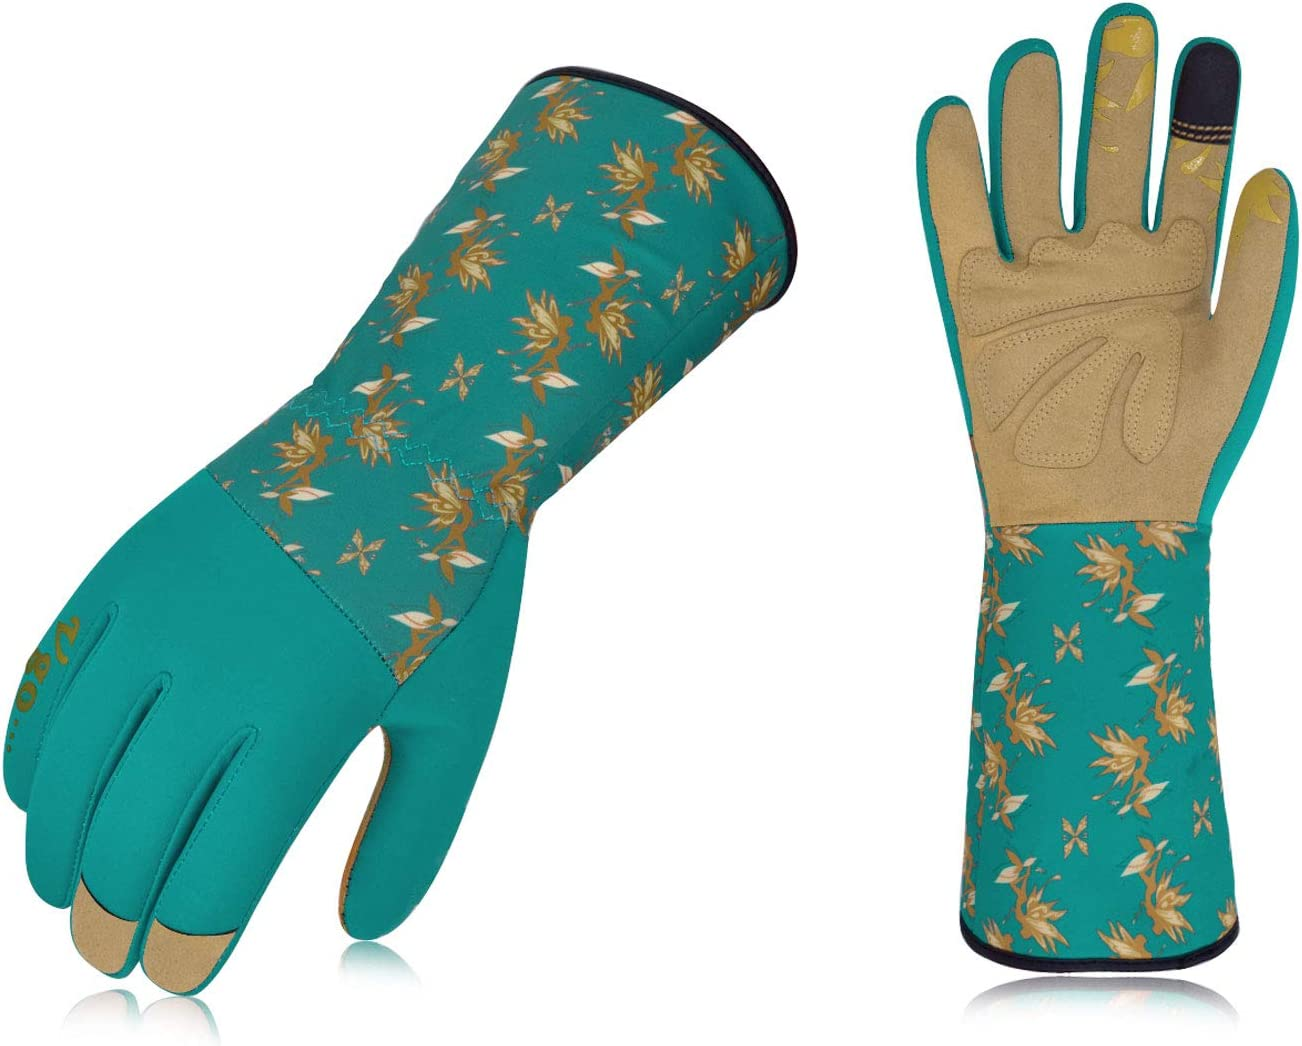 Vgo 1-Pair Women's Synthetic Leather Long Cuff Rose Garden Gloves (Size S, Blue, SL7453)